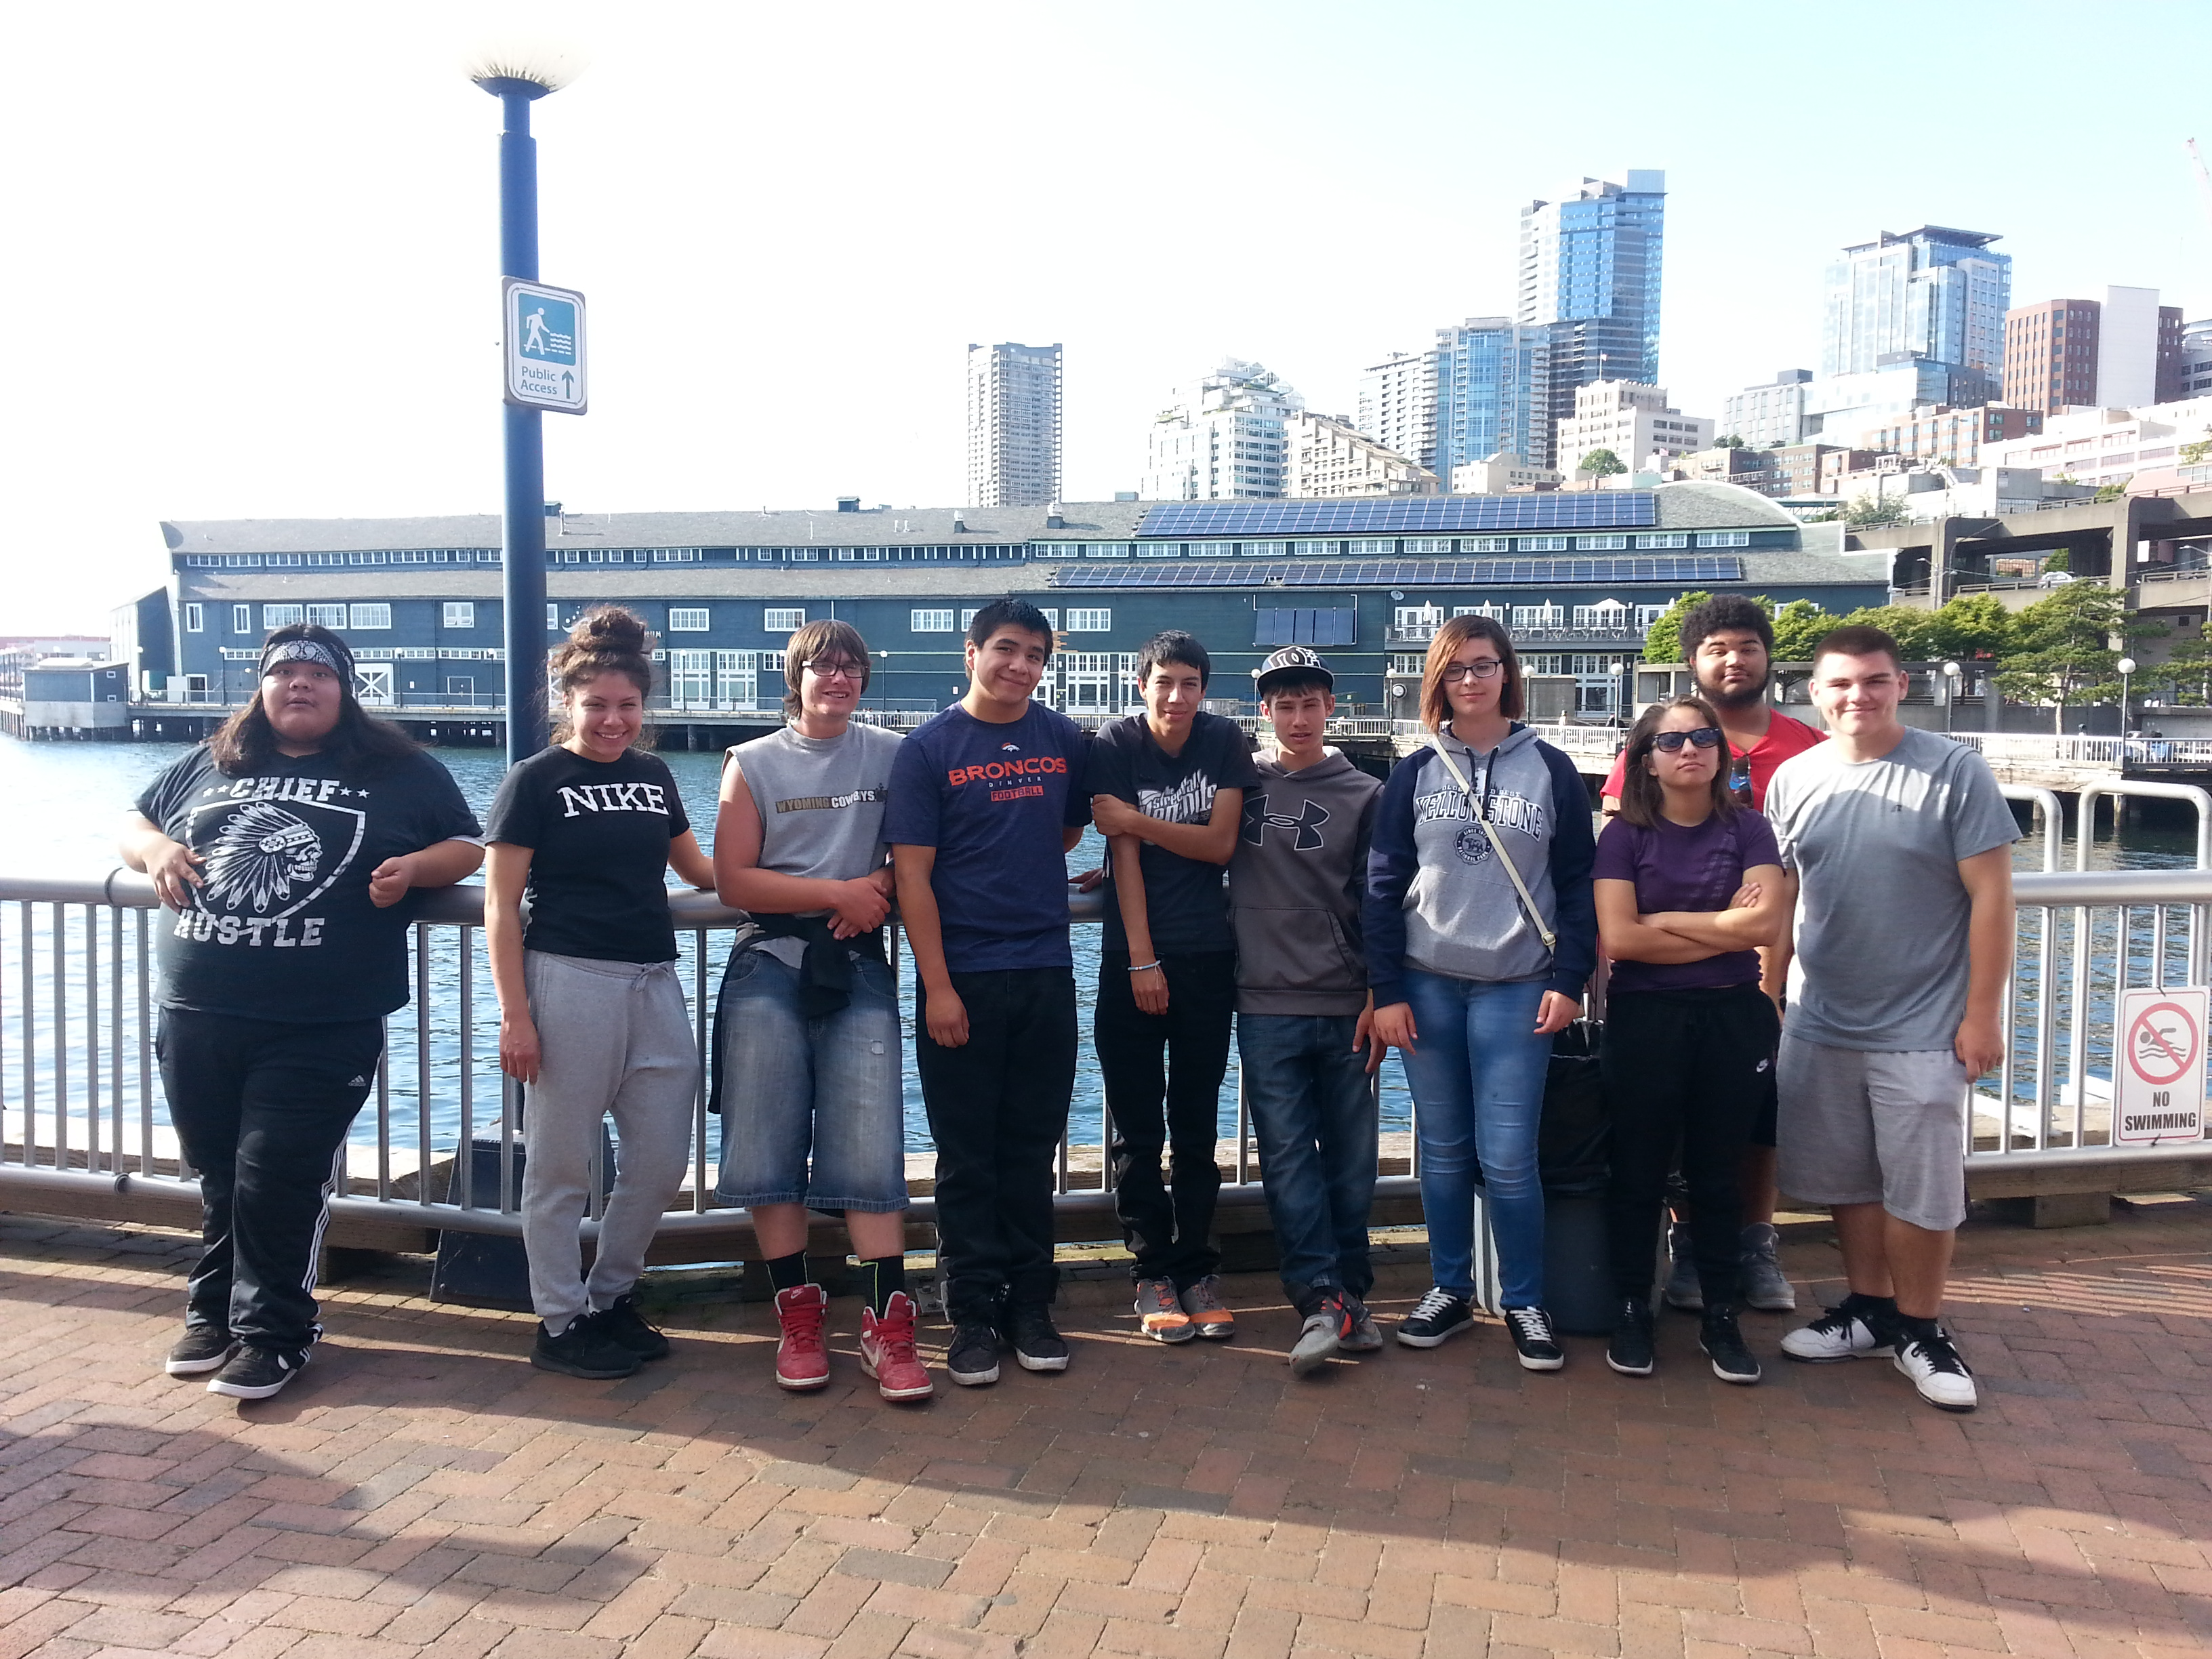 9-12th graders enjoy a trip to Seattle as part of the Upward Bound program